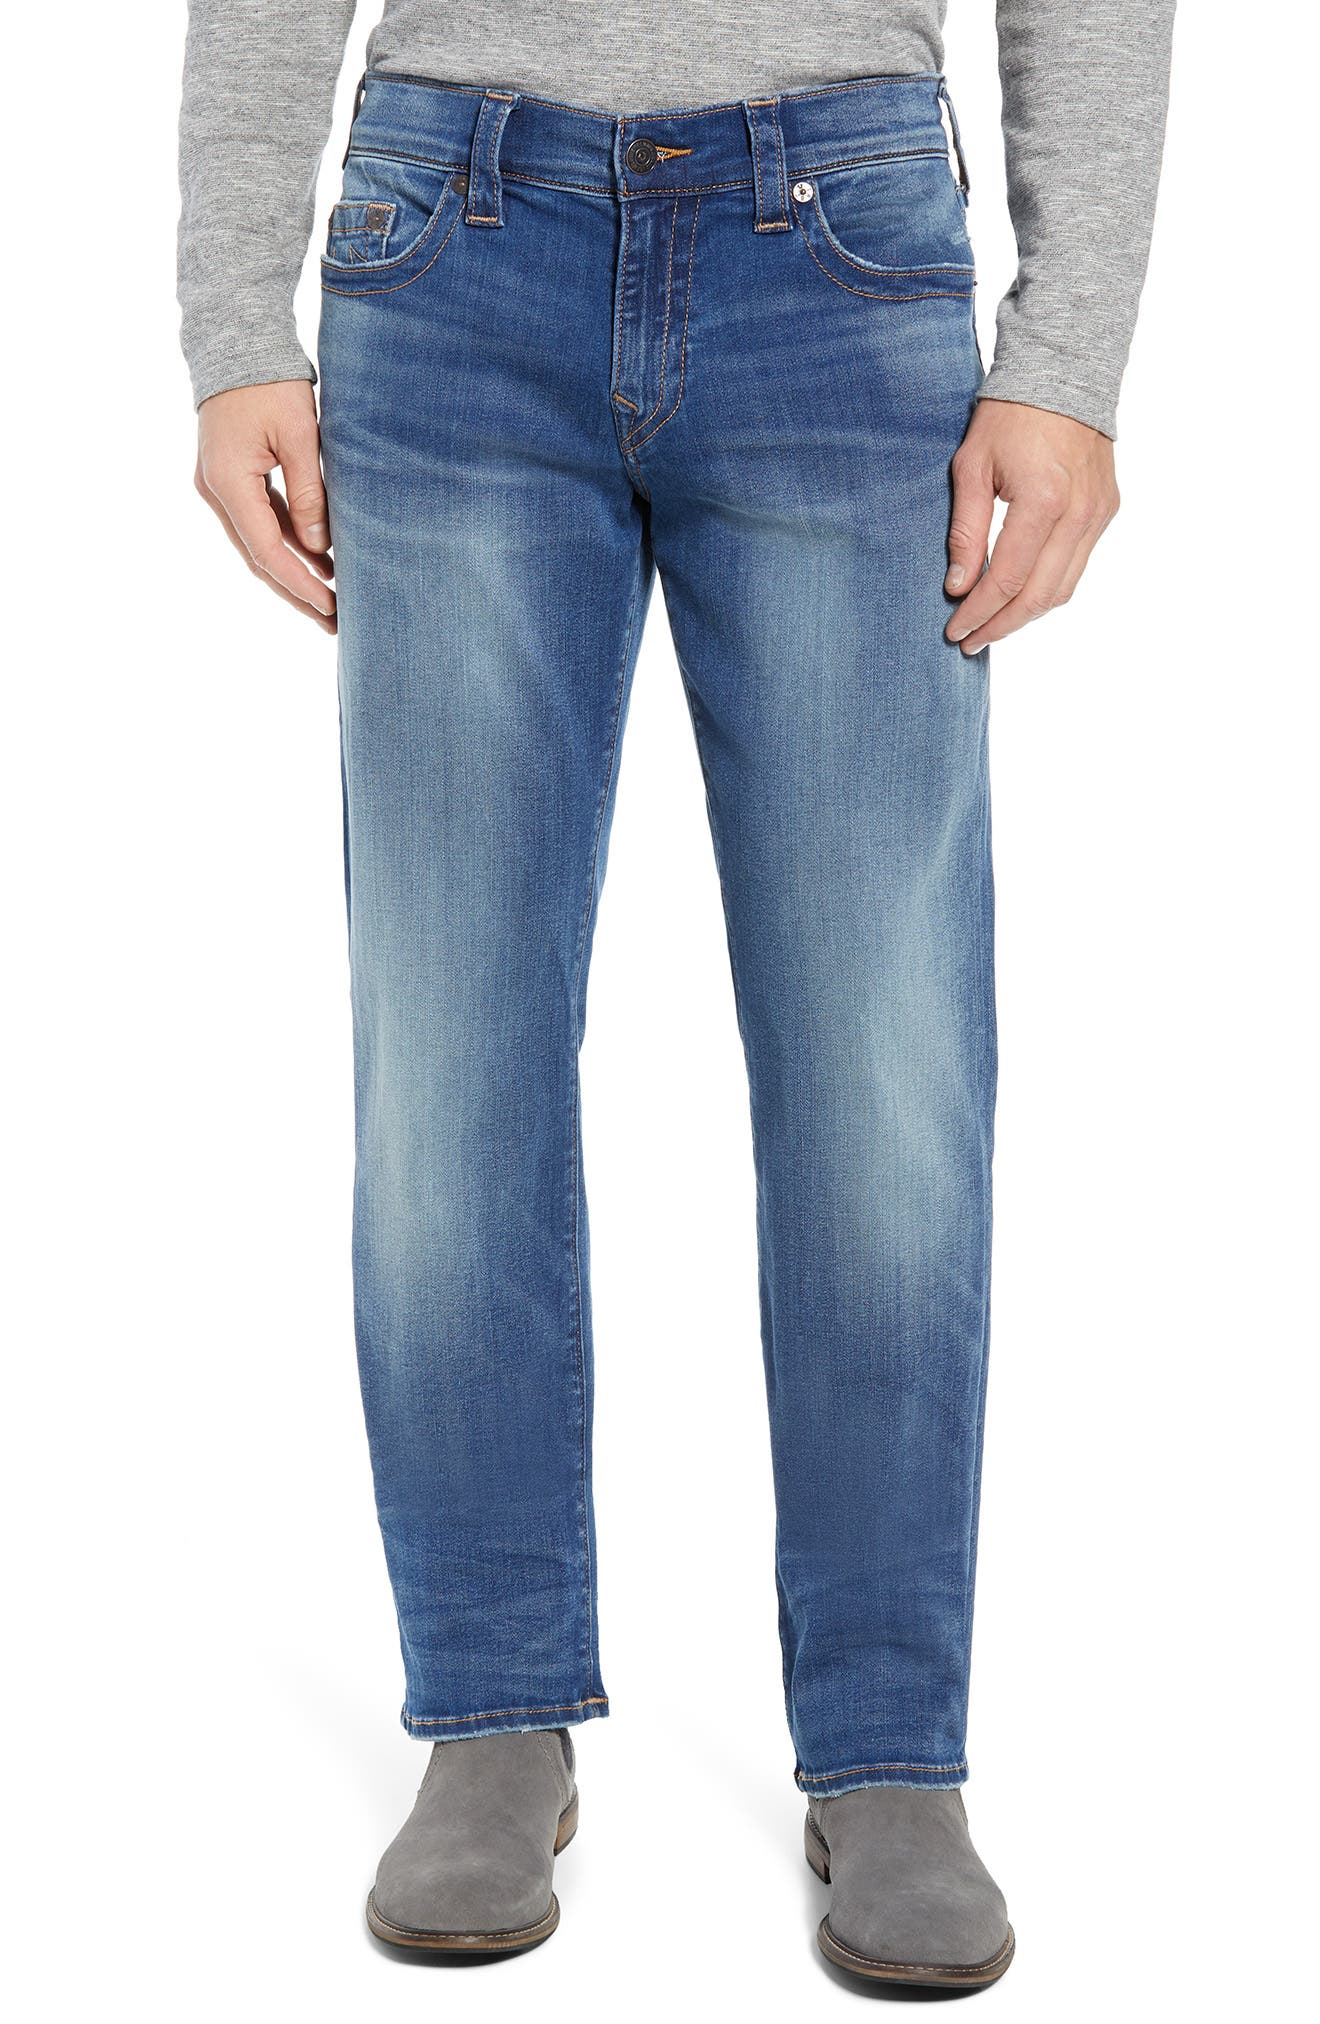 Ricky Relaxed Fit Jeans,                             Main thumbnail 1, color,                             SUPERNOVA BLUES